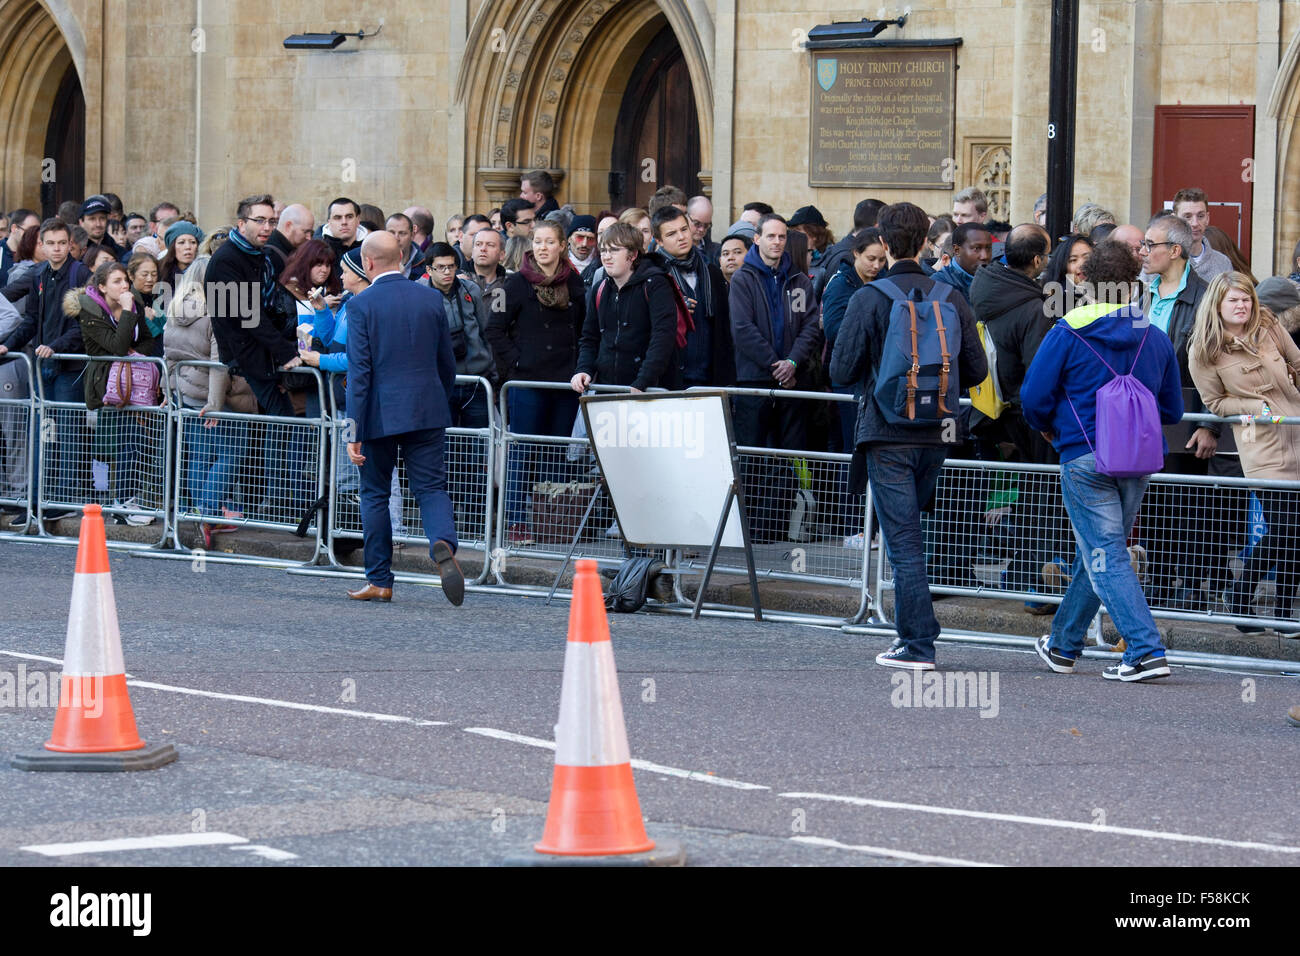 Crowds gather for the Spectre Premiere London England - Stock Image